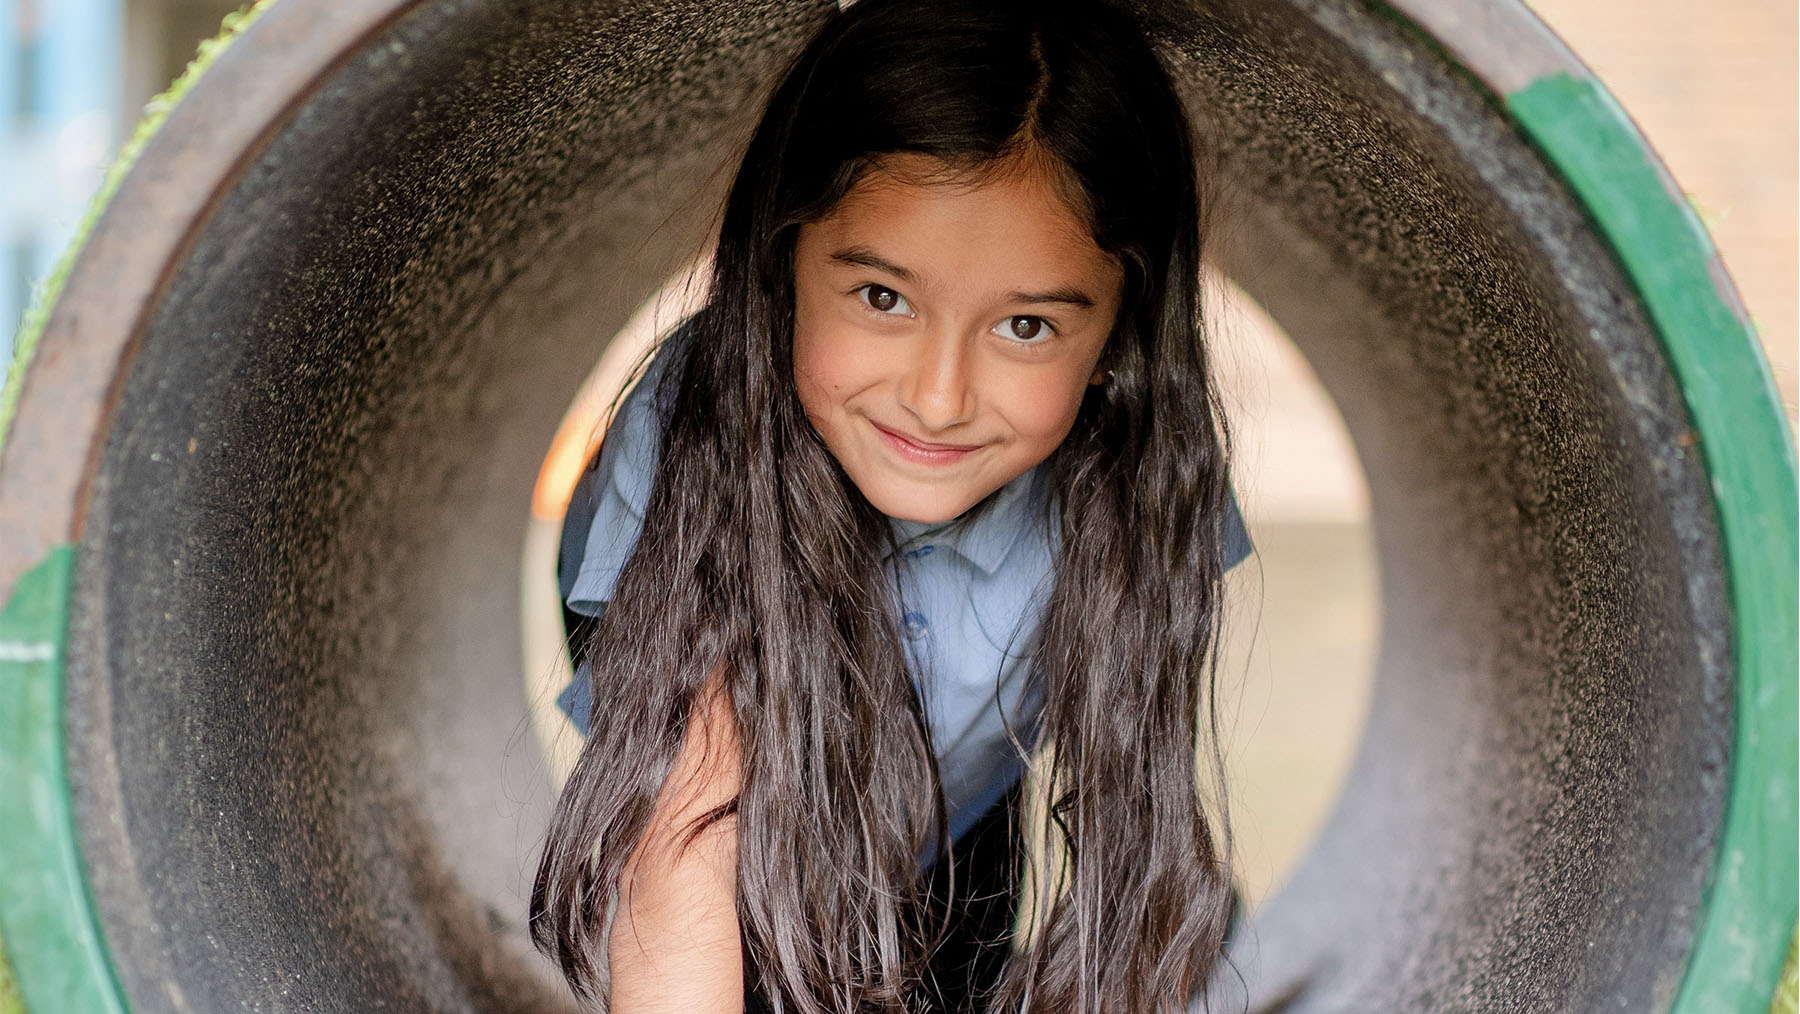 Girl in concrete tube in playground smiling